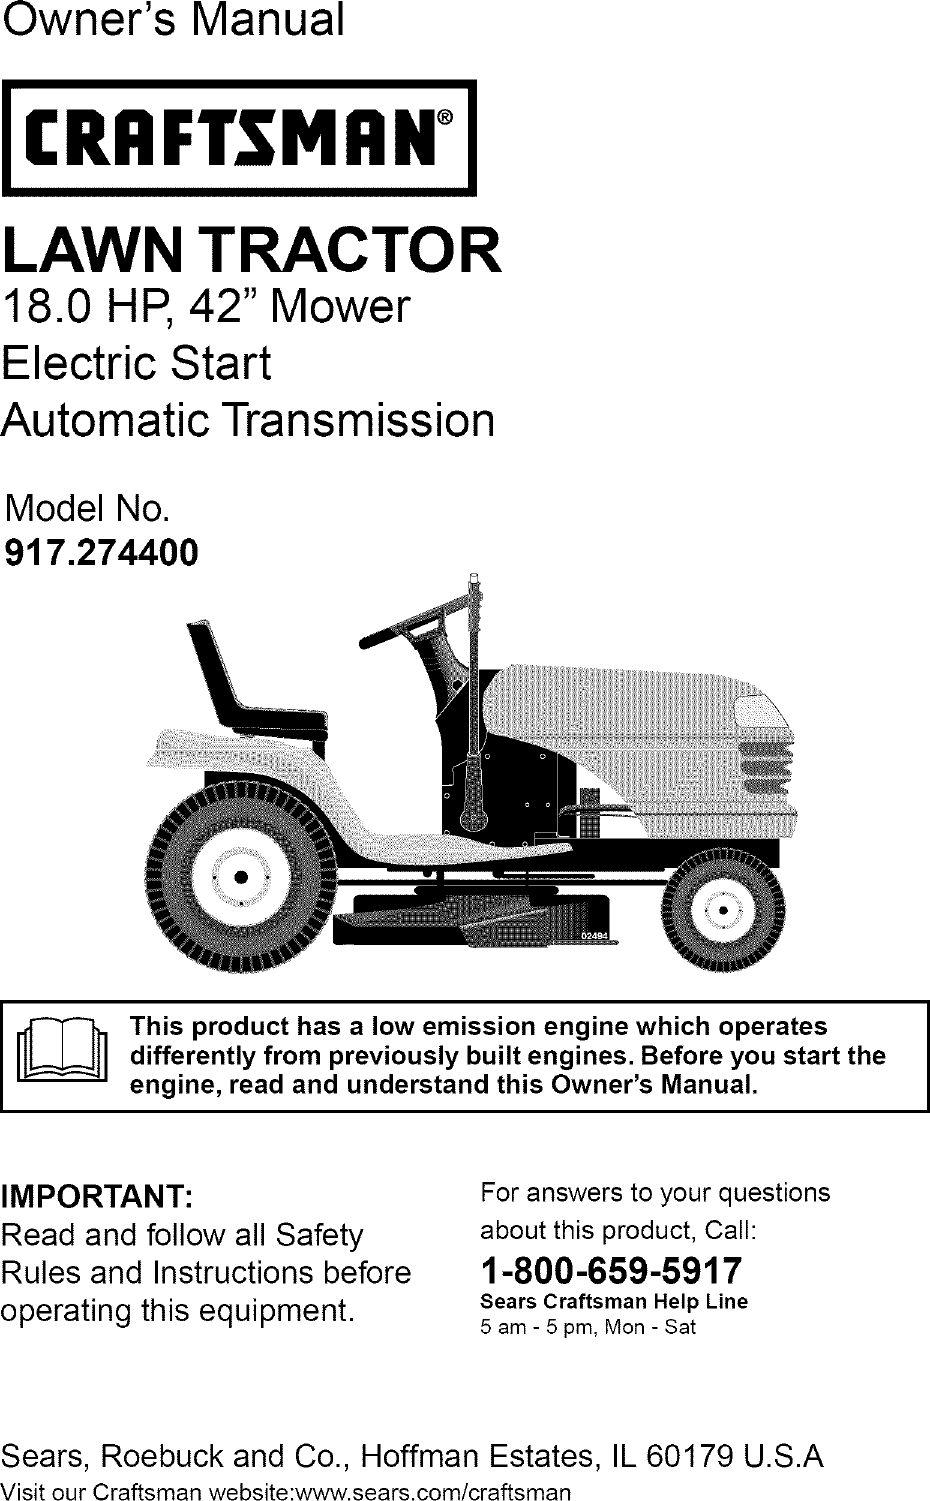 Owners Manual For Craftsman Lt1000 Lawn Tractor